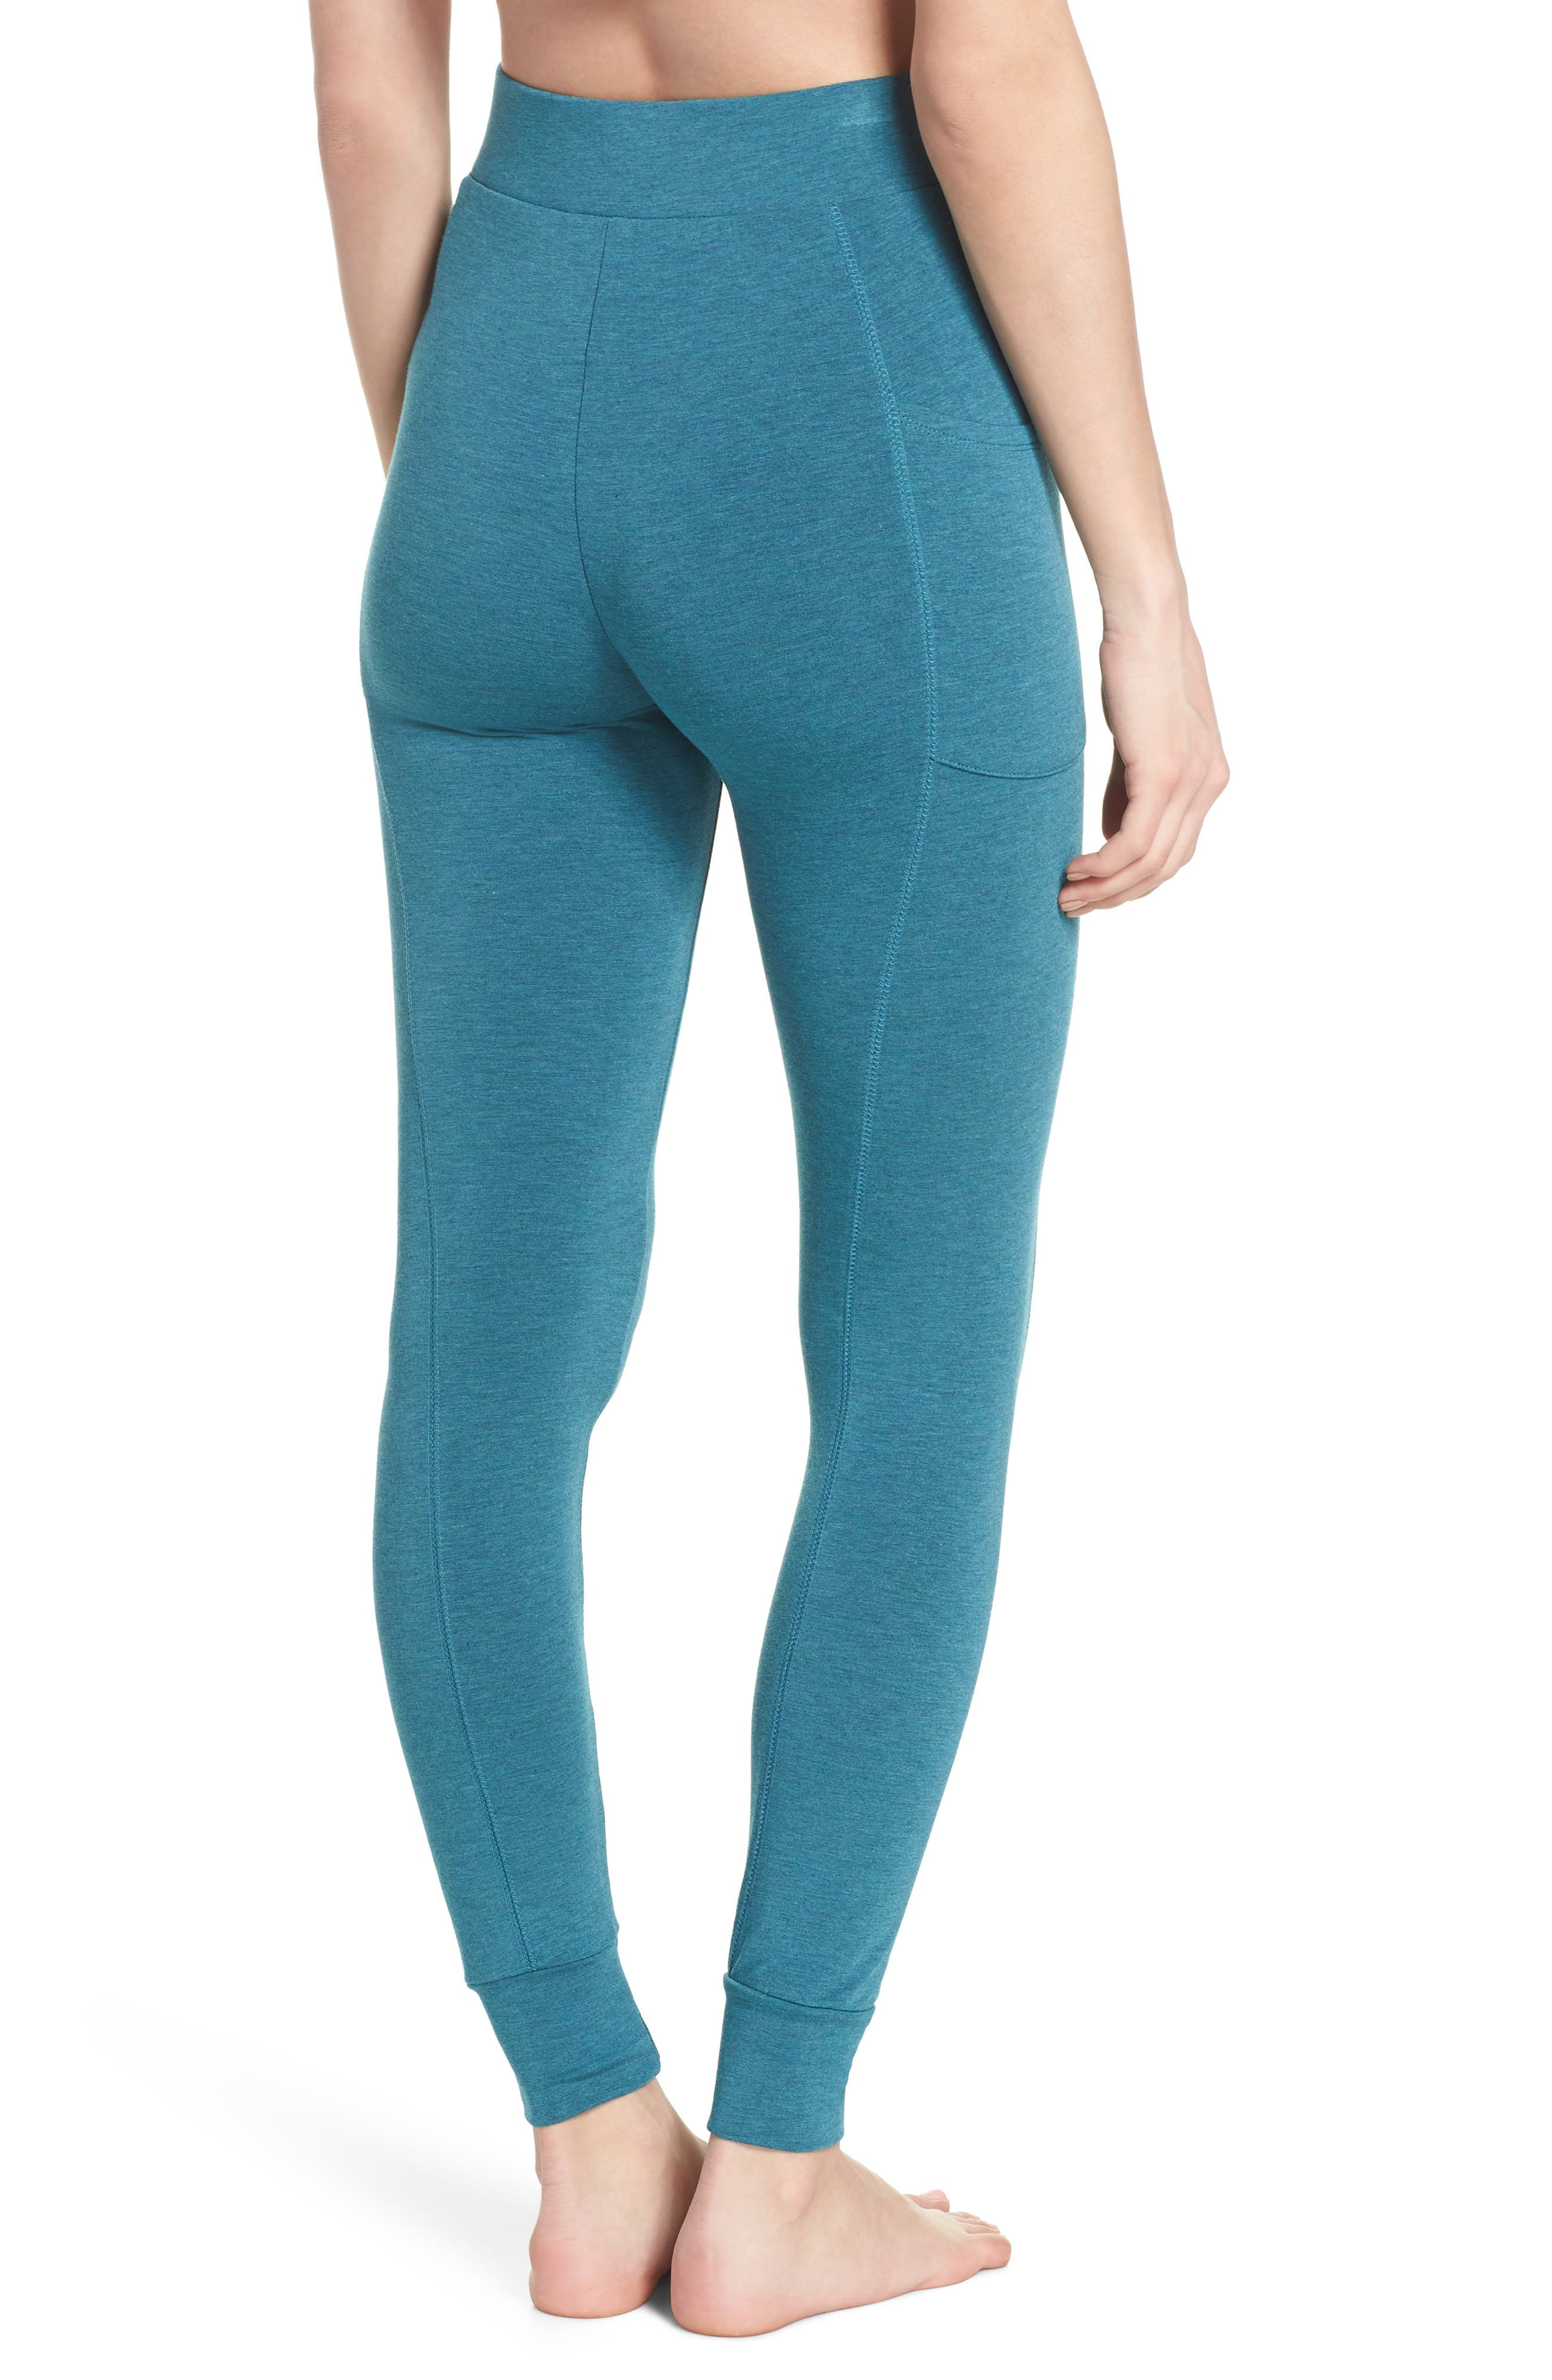 Kickin' It French Terry High Waist Lounge Leggings,                             Alternate thumbnail 2, color,                             Love Fern